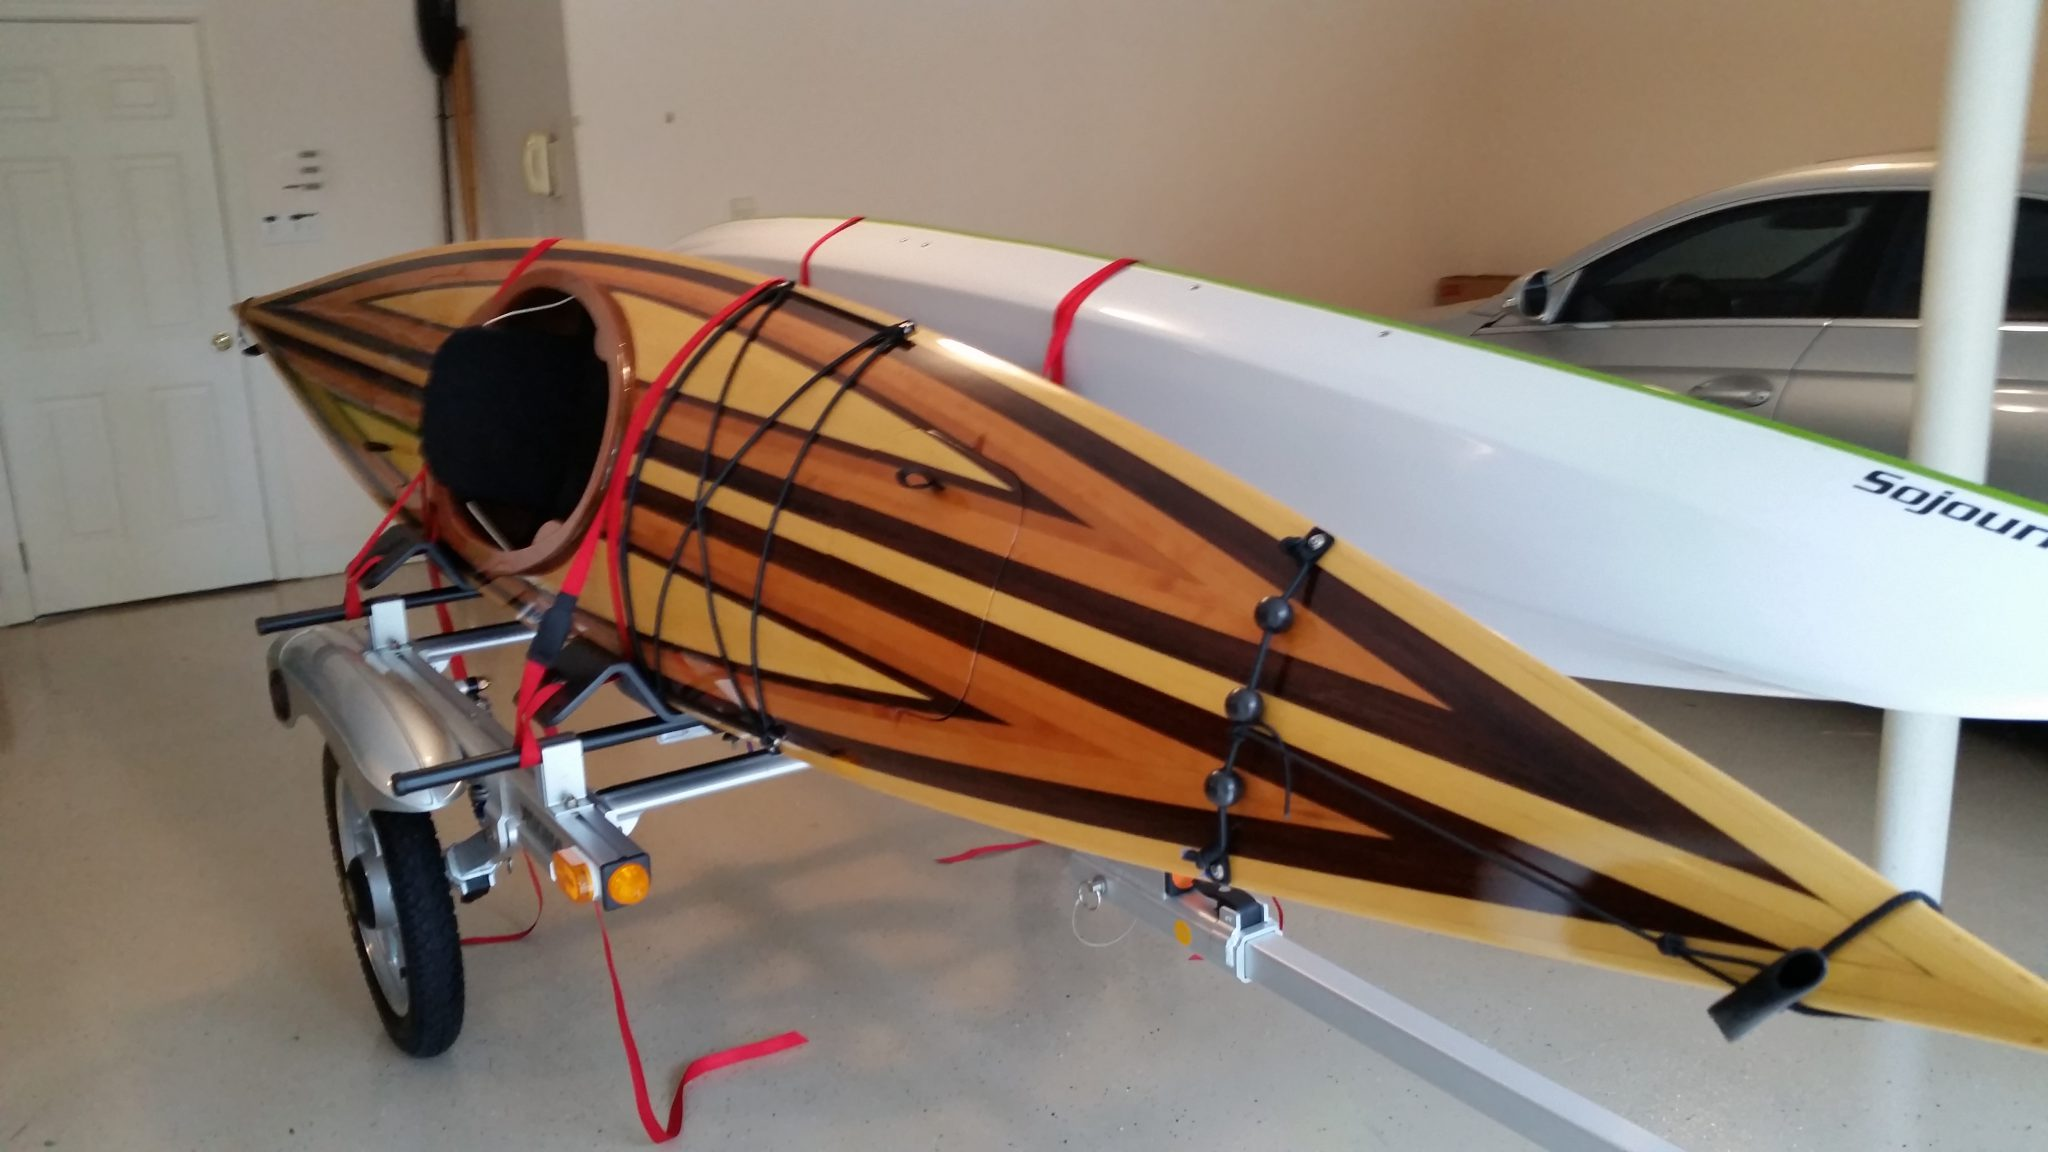 Kayak with multiple types of wood